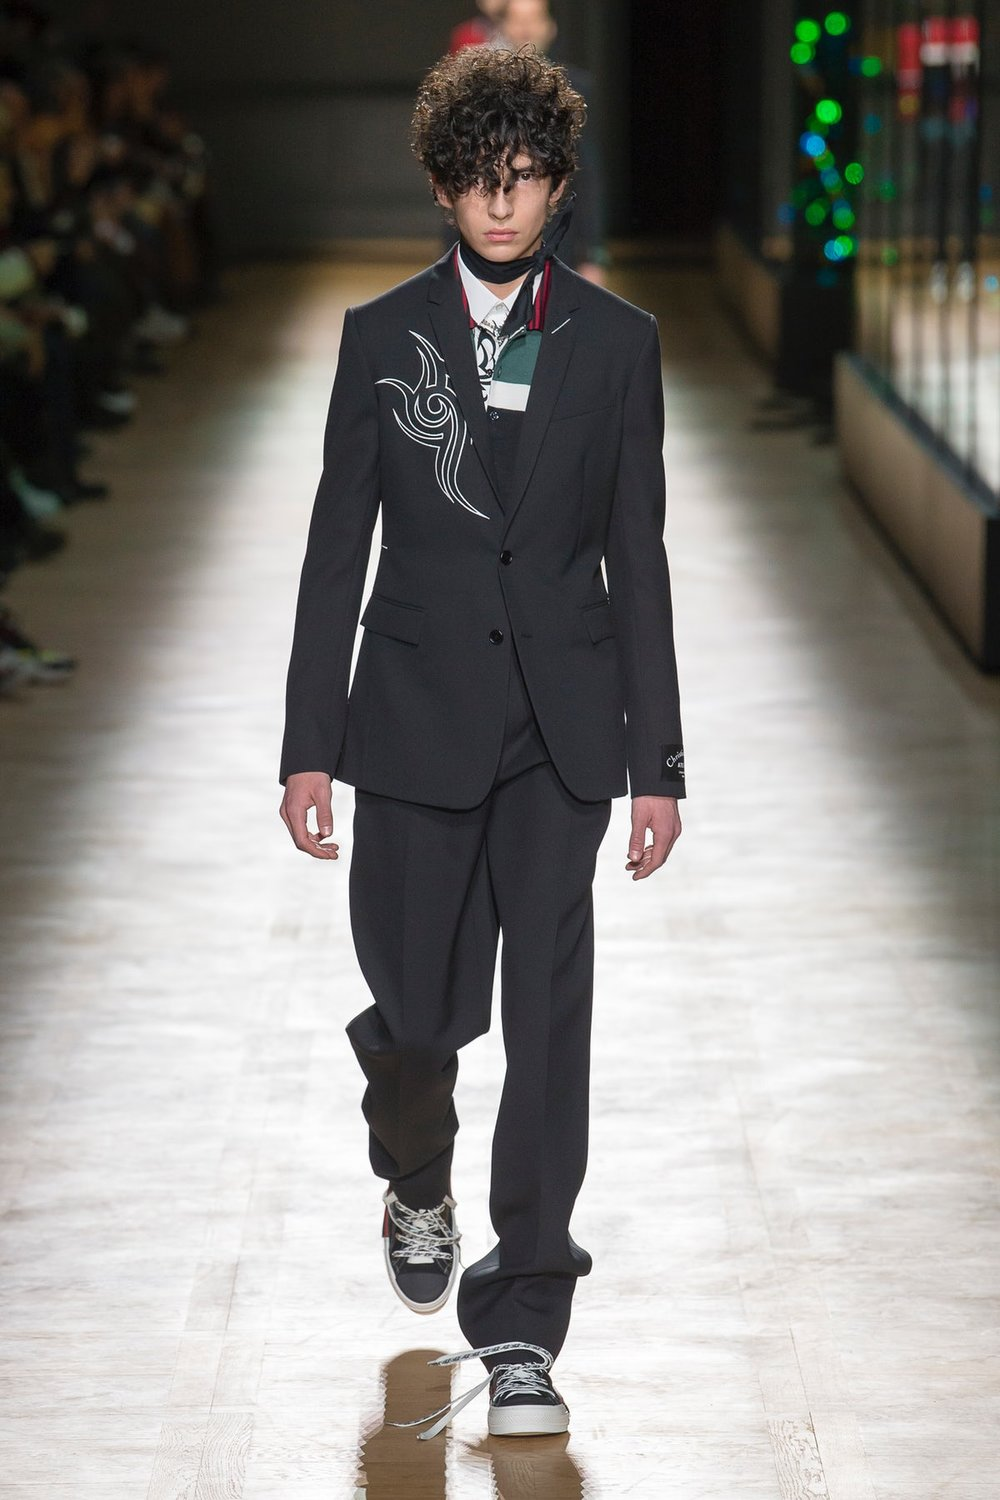 dior_homme_look_11_menswear_autumn_2018.jpeg